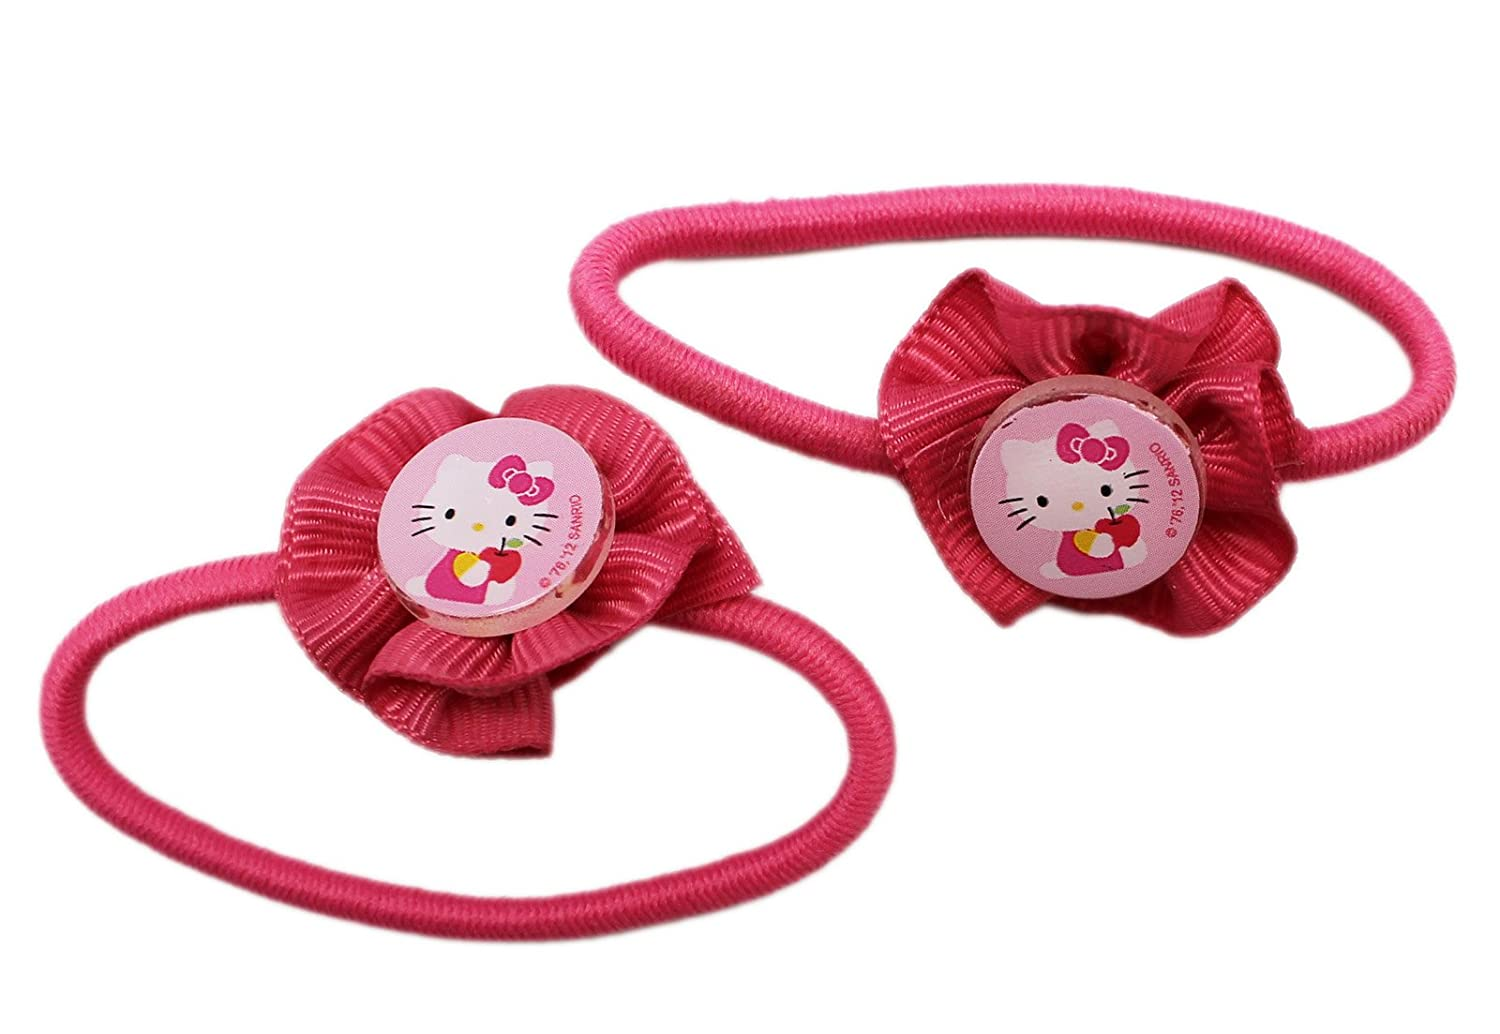 Amazon.com  2 Pack Pink Hello Kitty Flower Hair Ties  Toys   Games 5d9a584e554